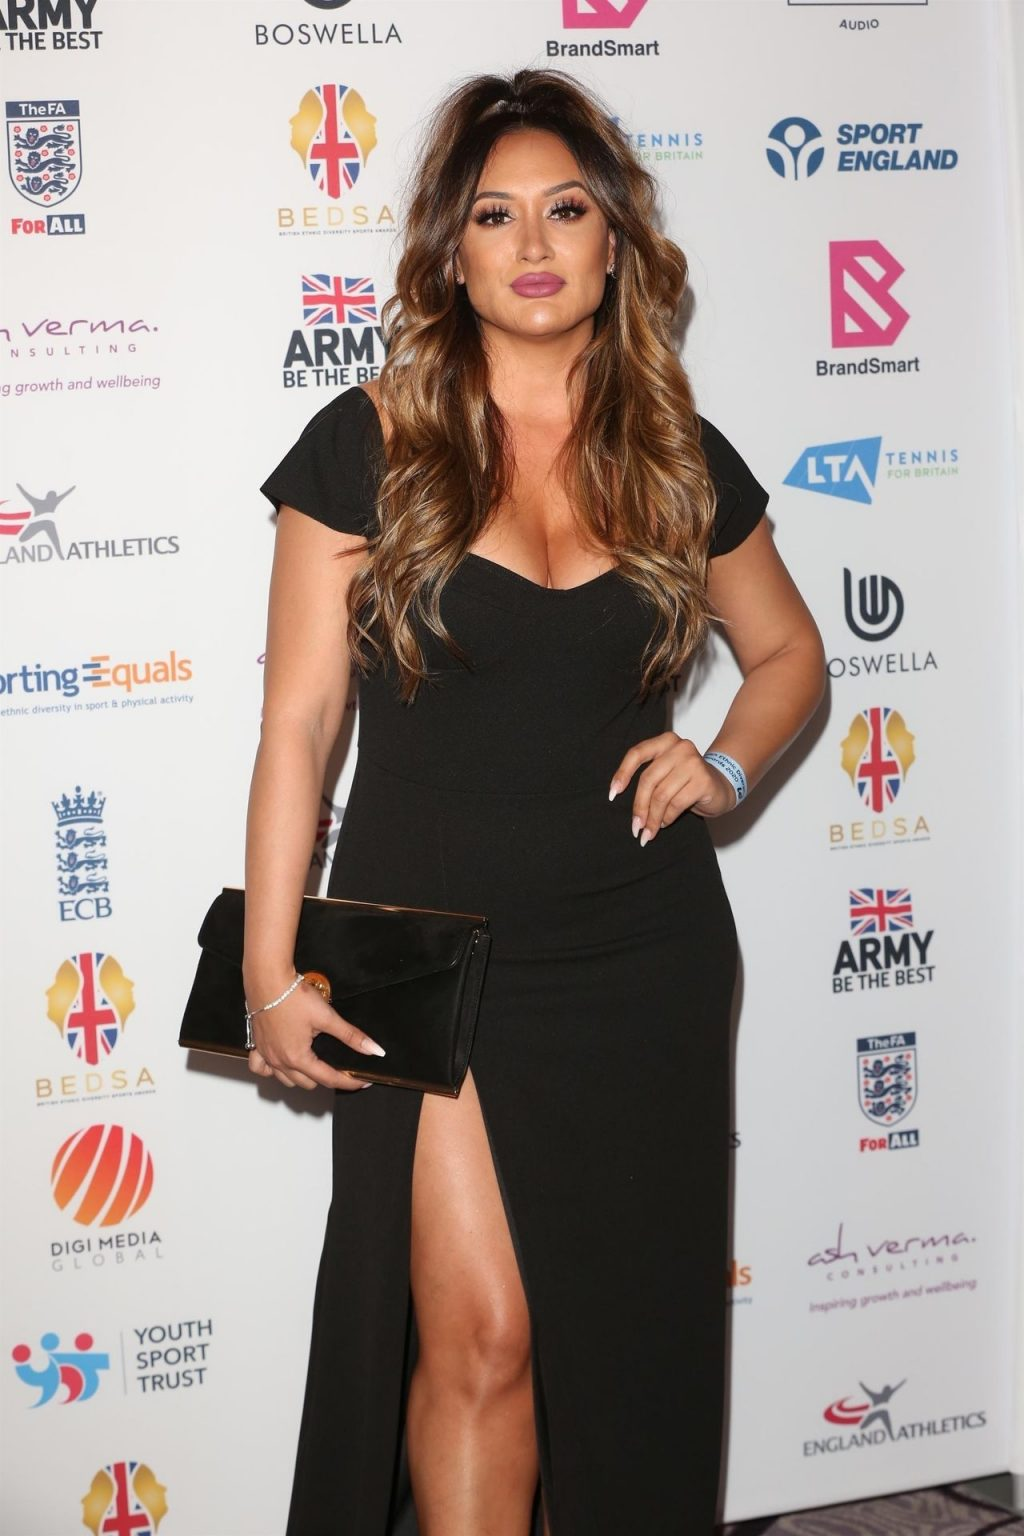 Michelle Joy Phelps Shows Her Cleavage at the British Ethnic Diversity Sports Awards (11 Photos)